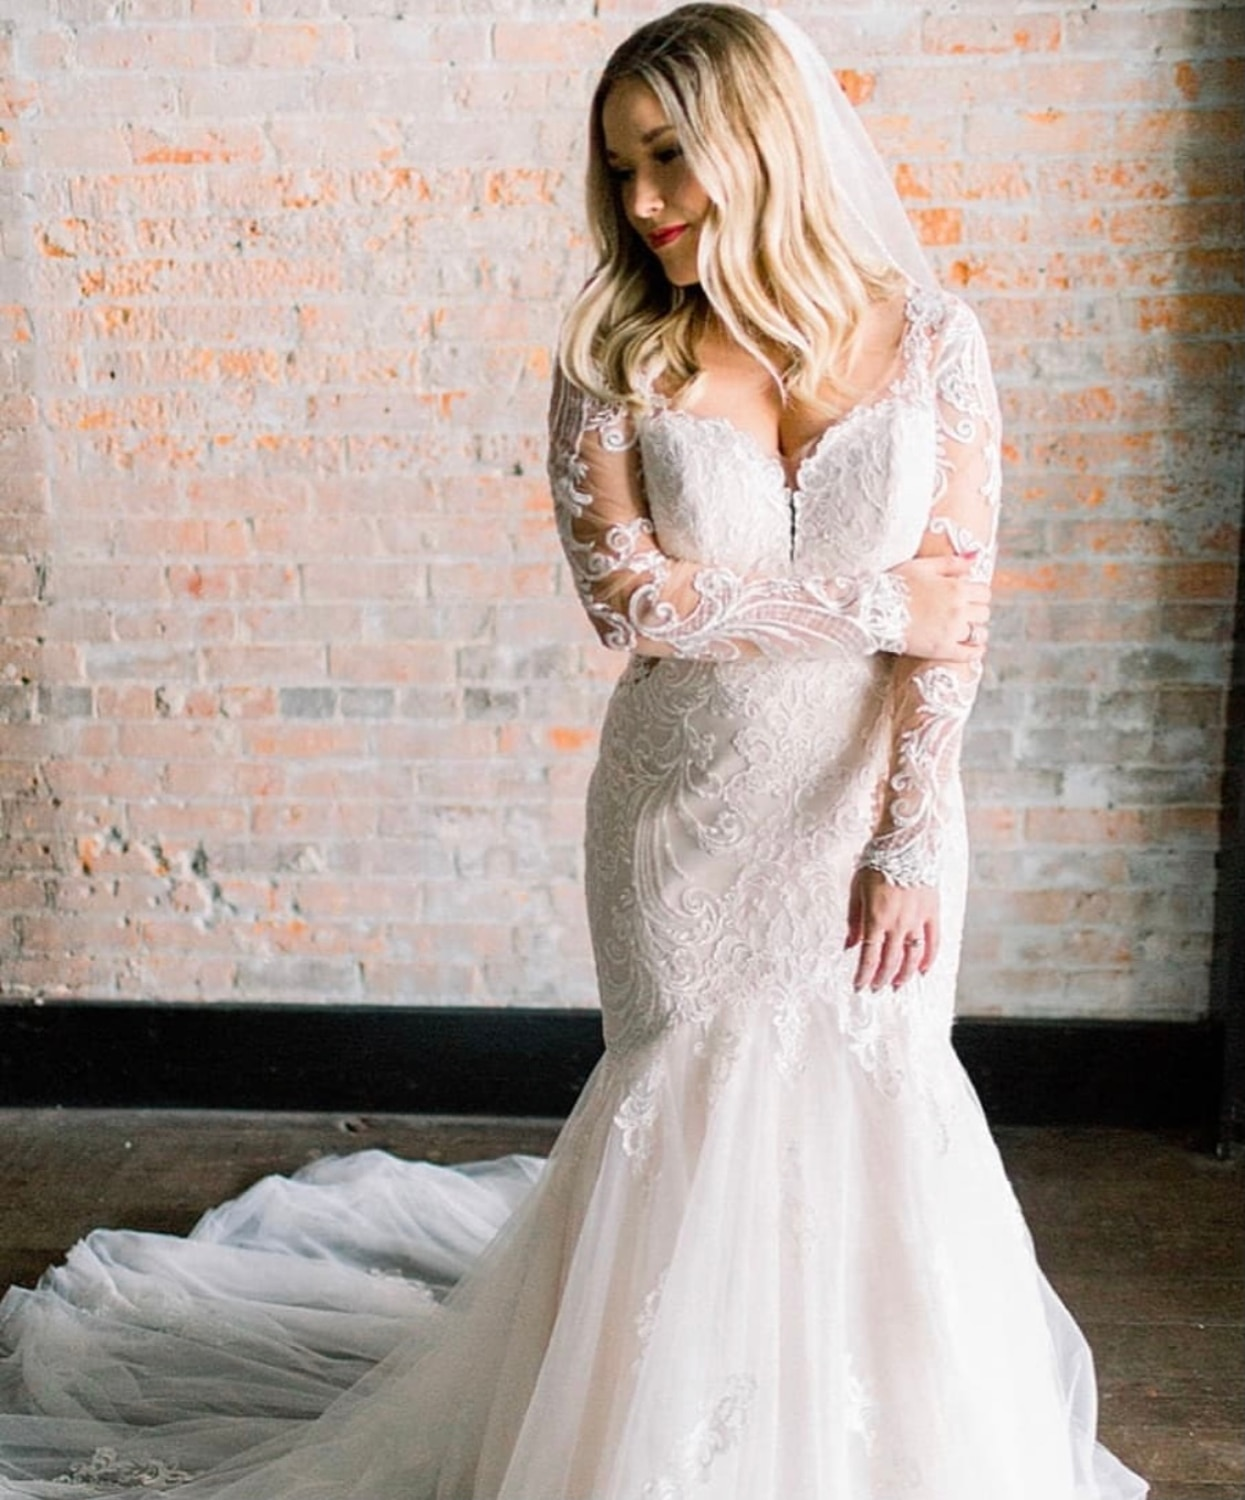 Wedding Dress Mermaid Lace Appliques Button Full Sleeve Tulle Backless Floor Length Sweep Train Bridal Gown Custom Made New